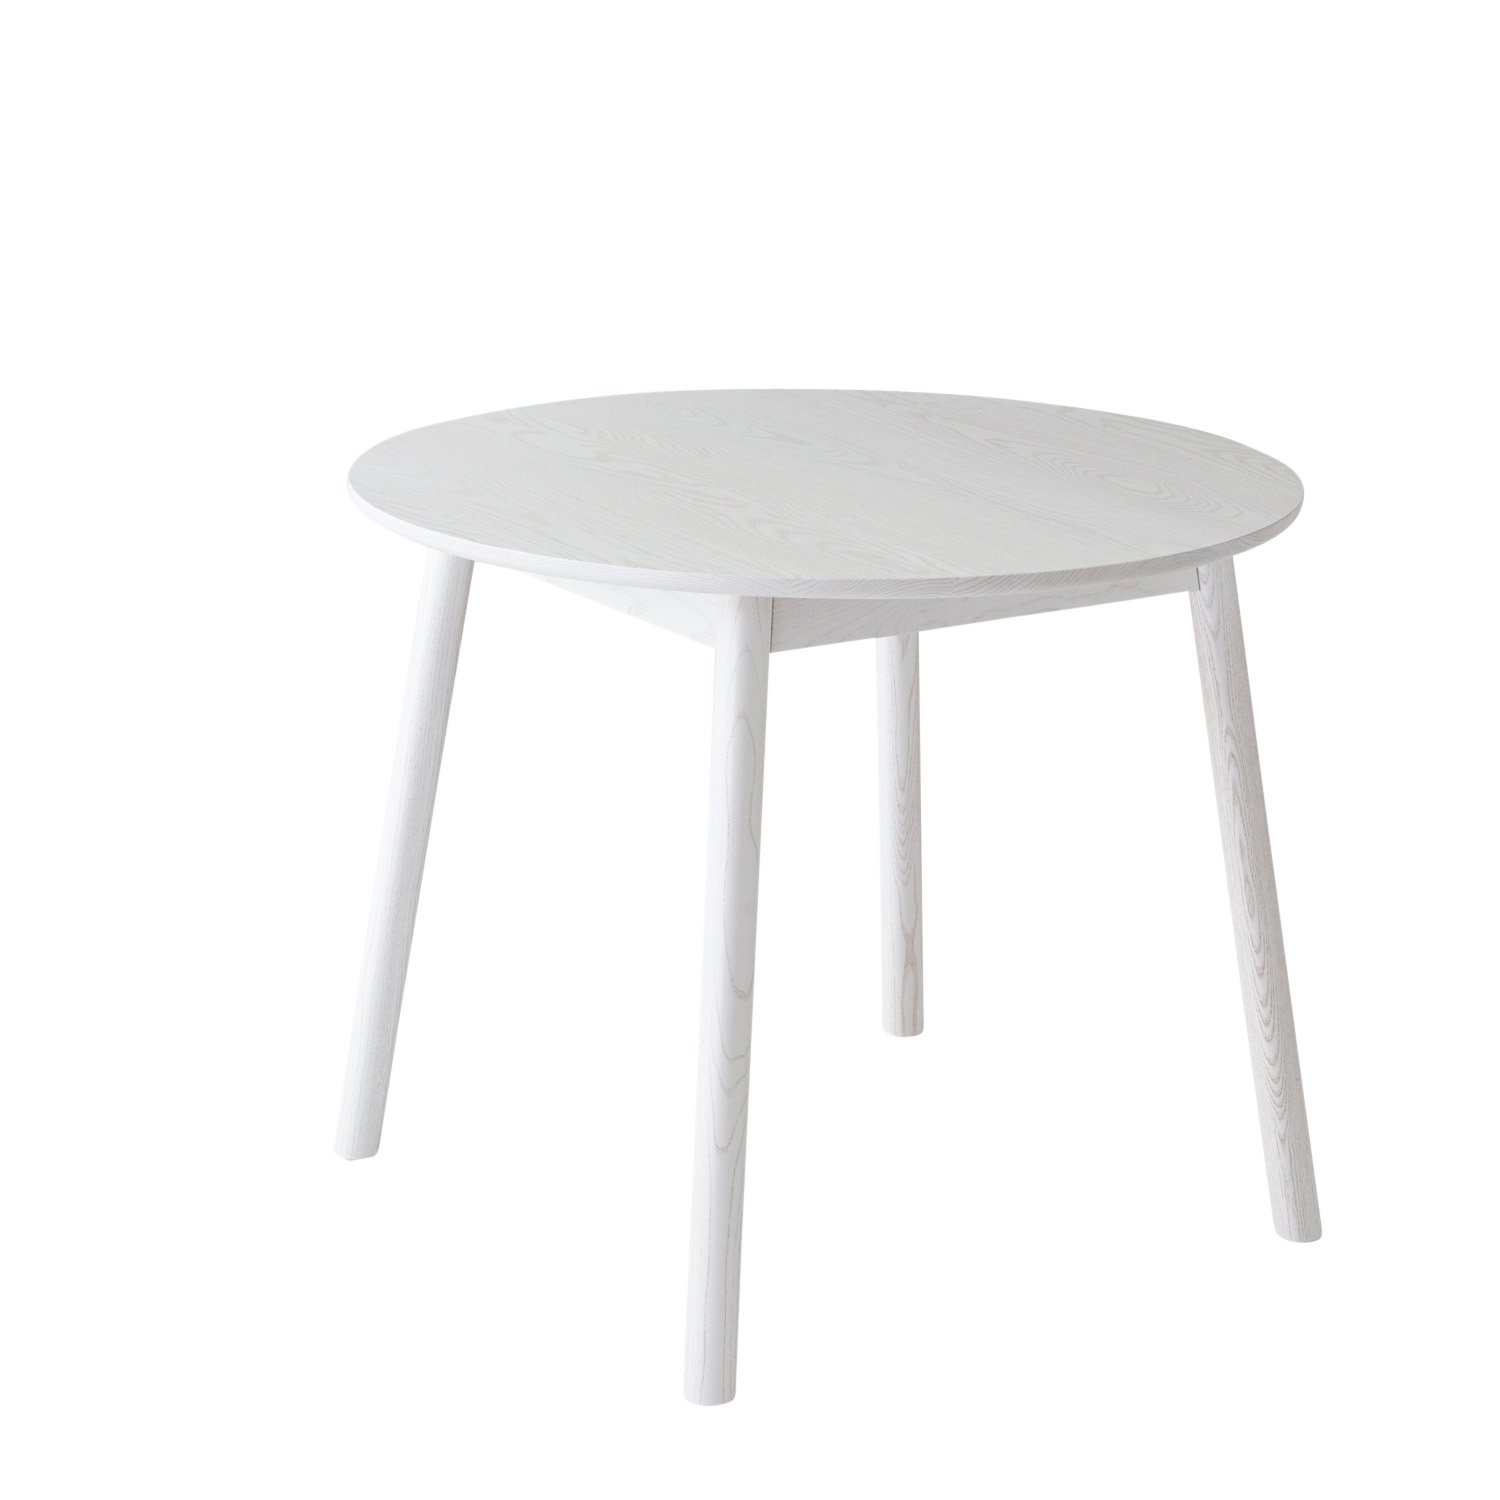 """Washington Circle Breakfast Table (2016) Brush Factory Rosie Kovacs, Owner The Cincinnati–based furniture company launched its first line last year when it won a $20,000 grant from the city. """"Giving a designer the ability to work directly with the factory provides more in the long run in terms of lower start-up costs and the ability to adapt to customers' needs quickly."""""""